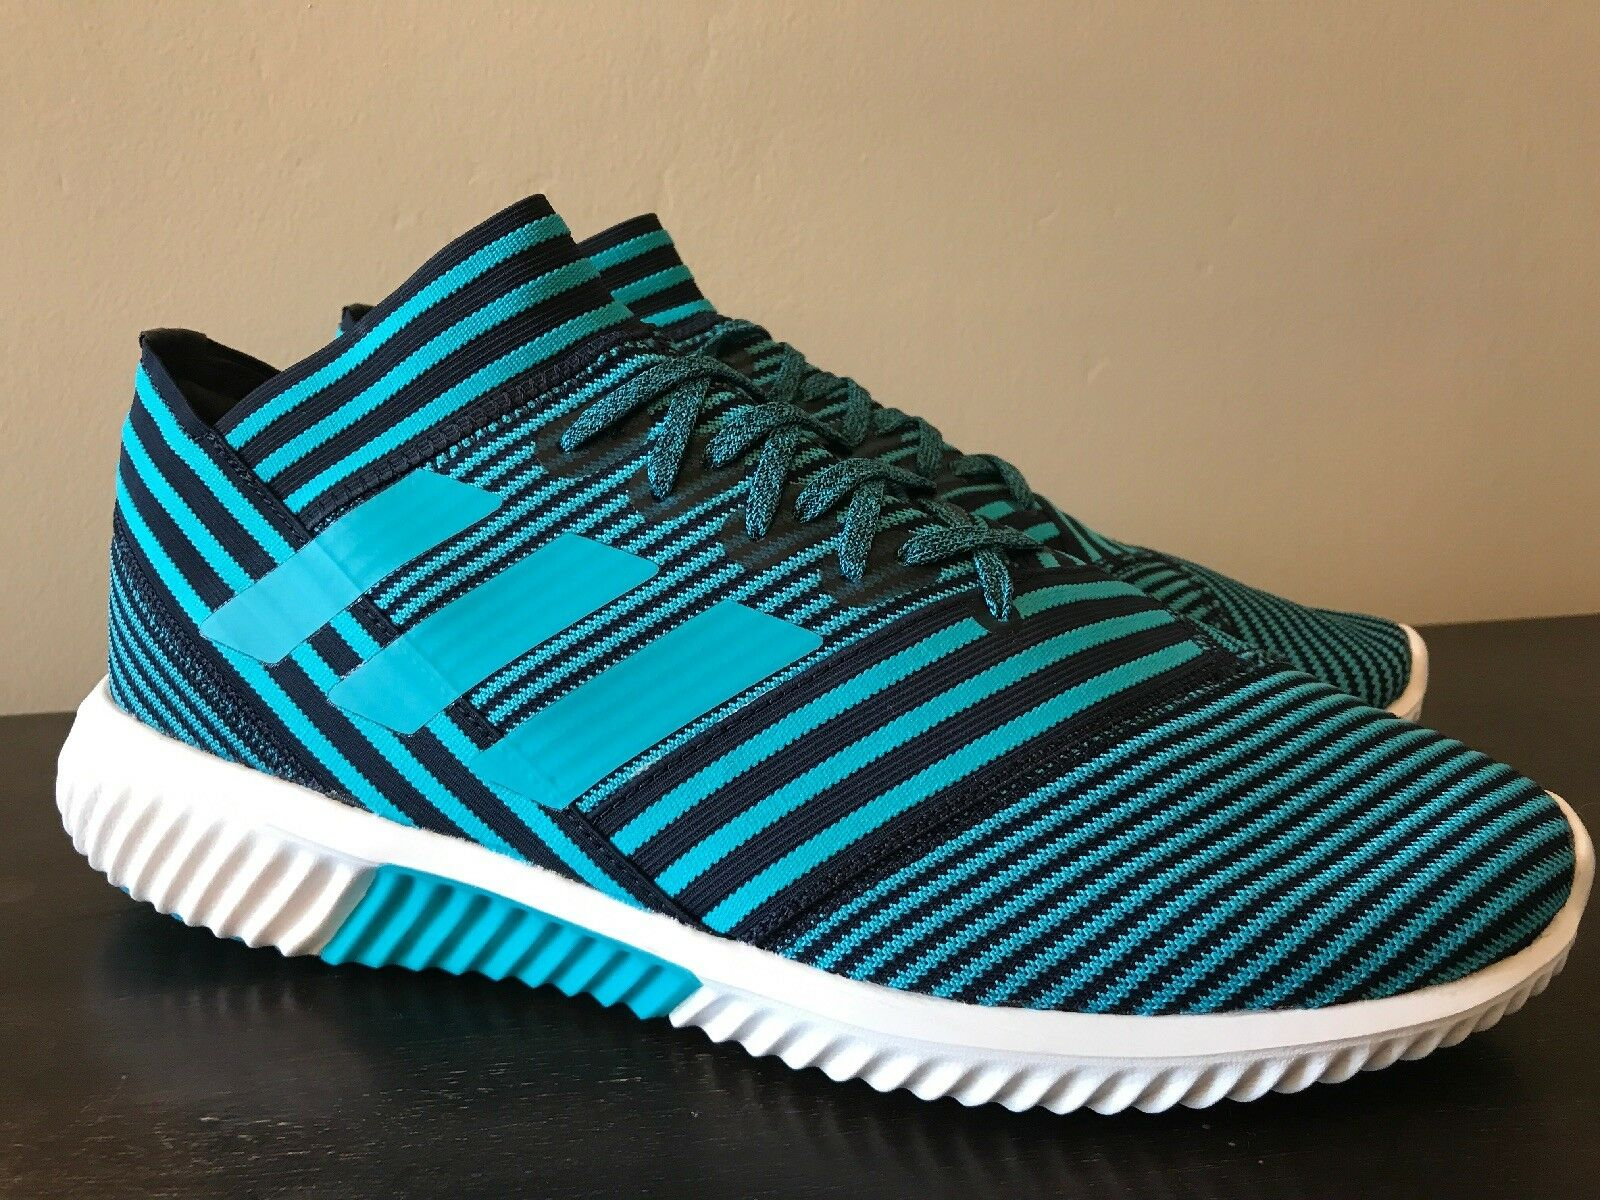 Adidas Men's Nemeziz Tango 17.1 Soccer Training shoes Teal Size 10.5 BY2306